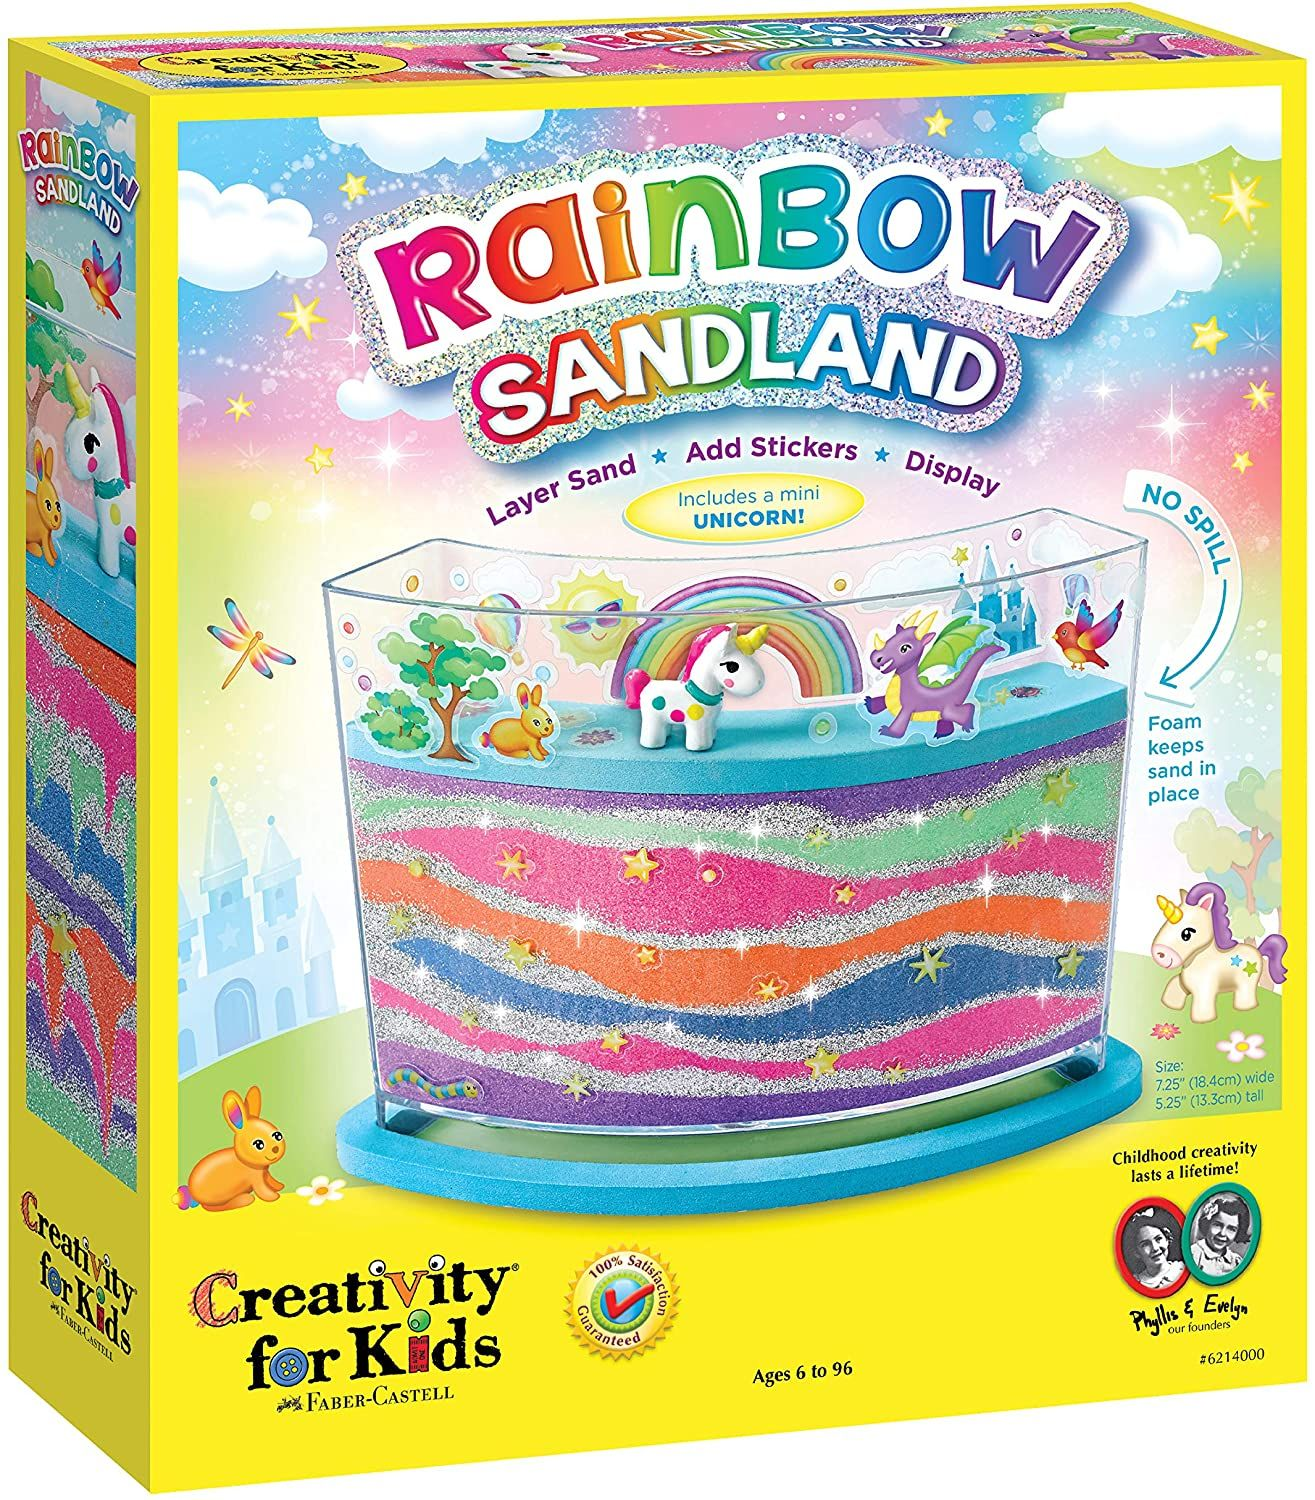 gifts for 6 year old girls-10.jpg